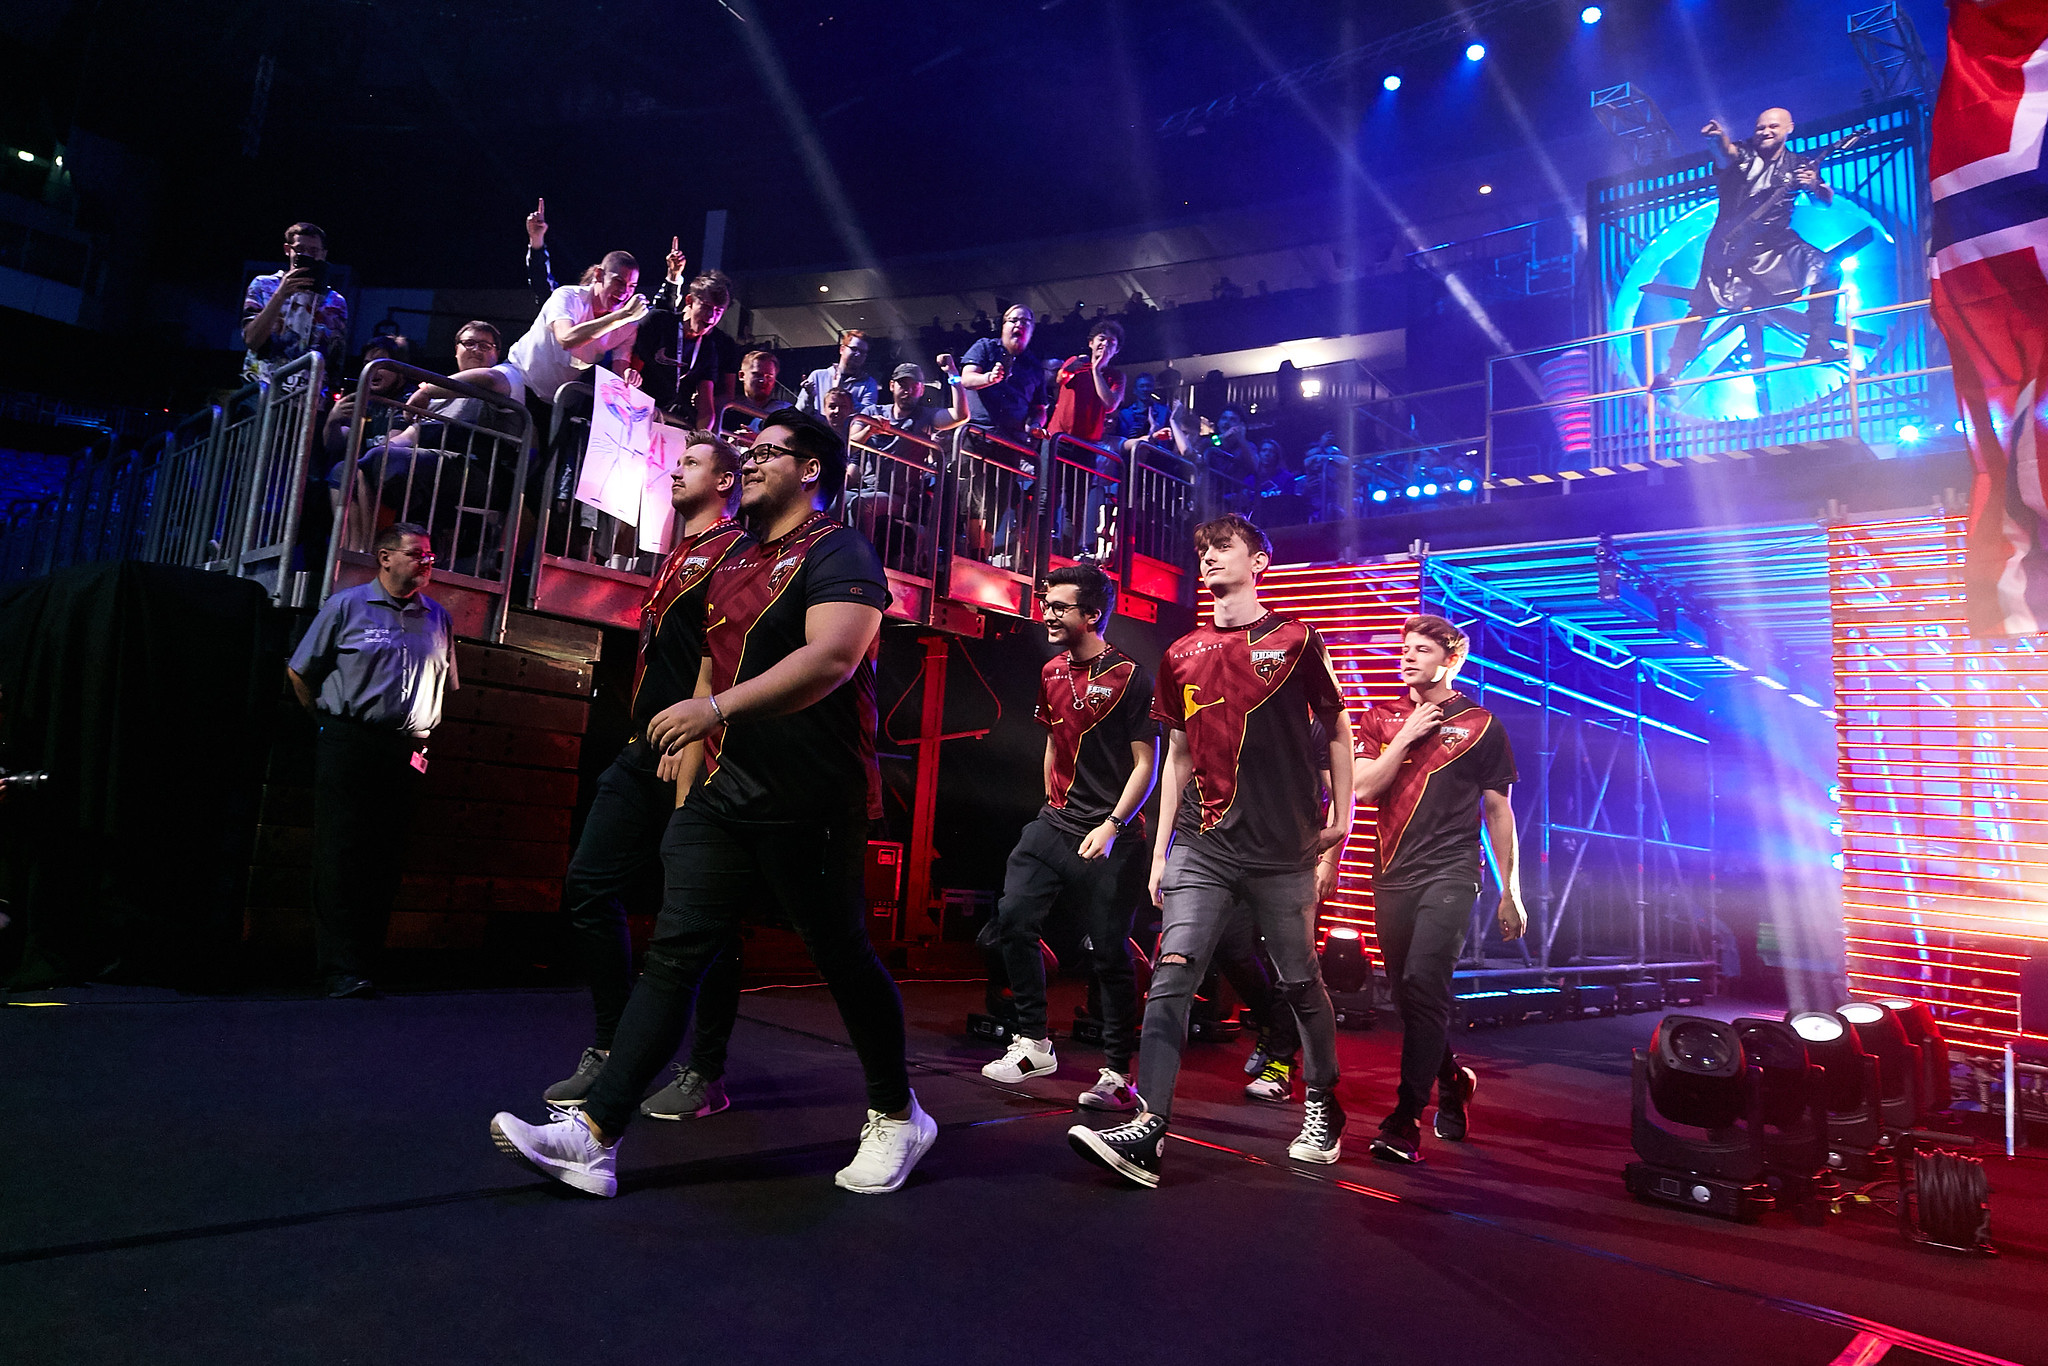 Renegades' CS:GO contracts are reportedly expiring soon